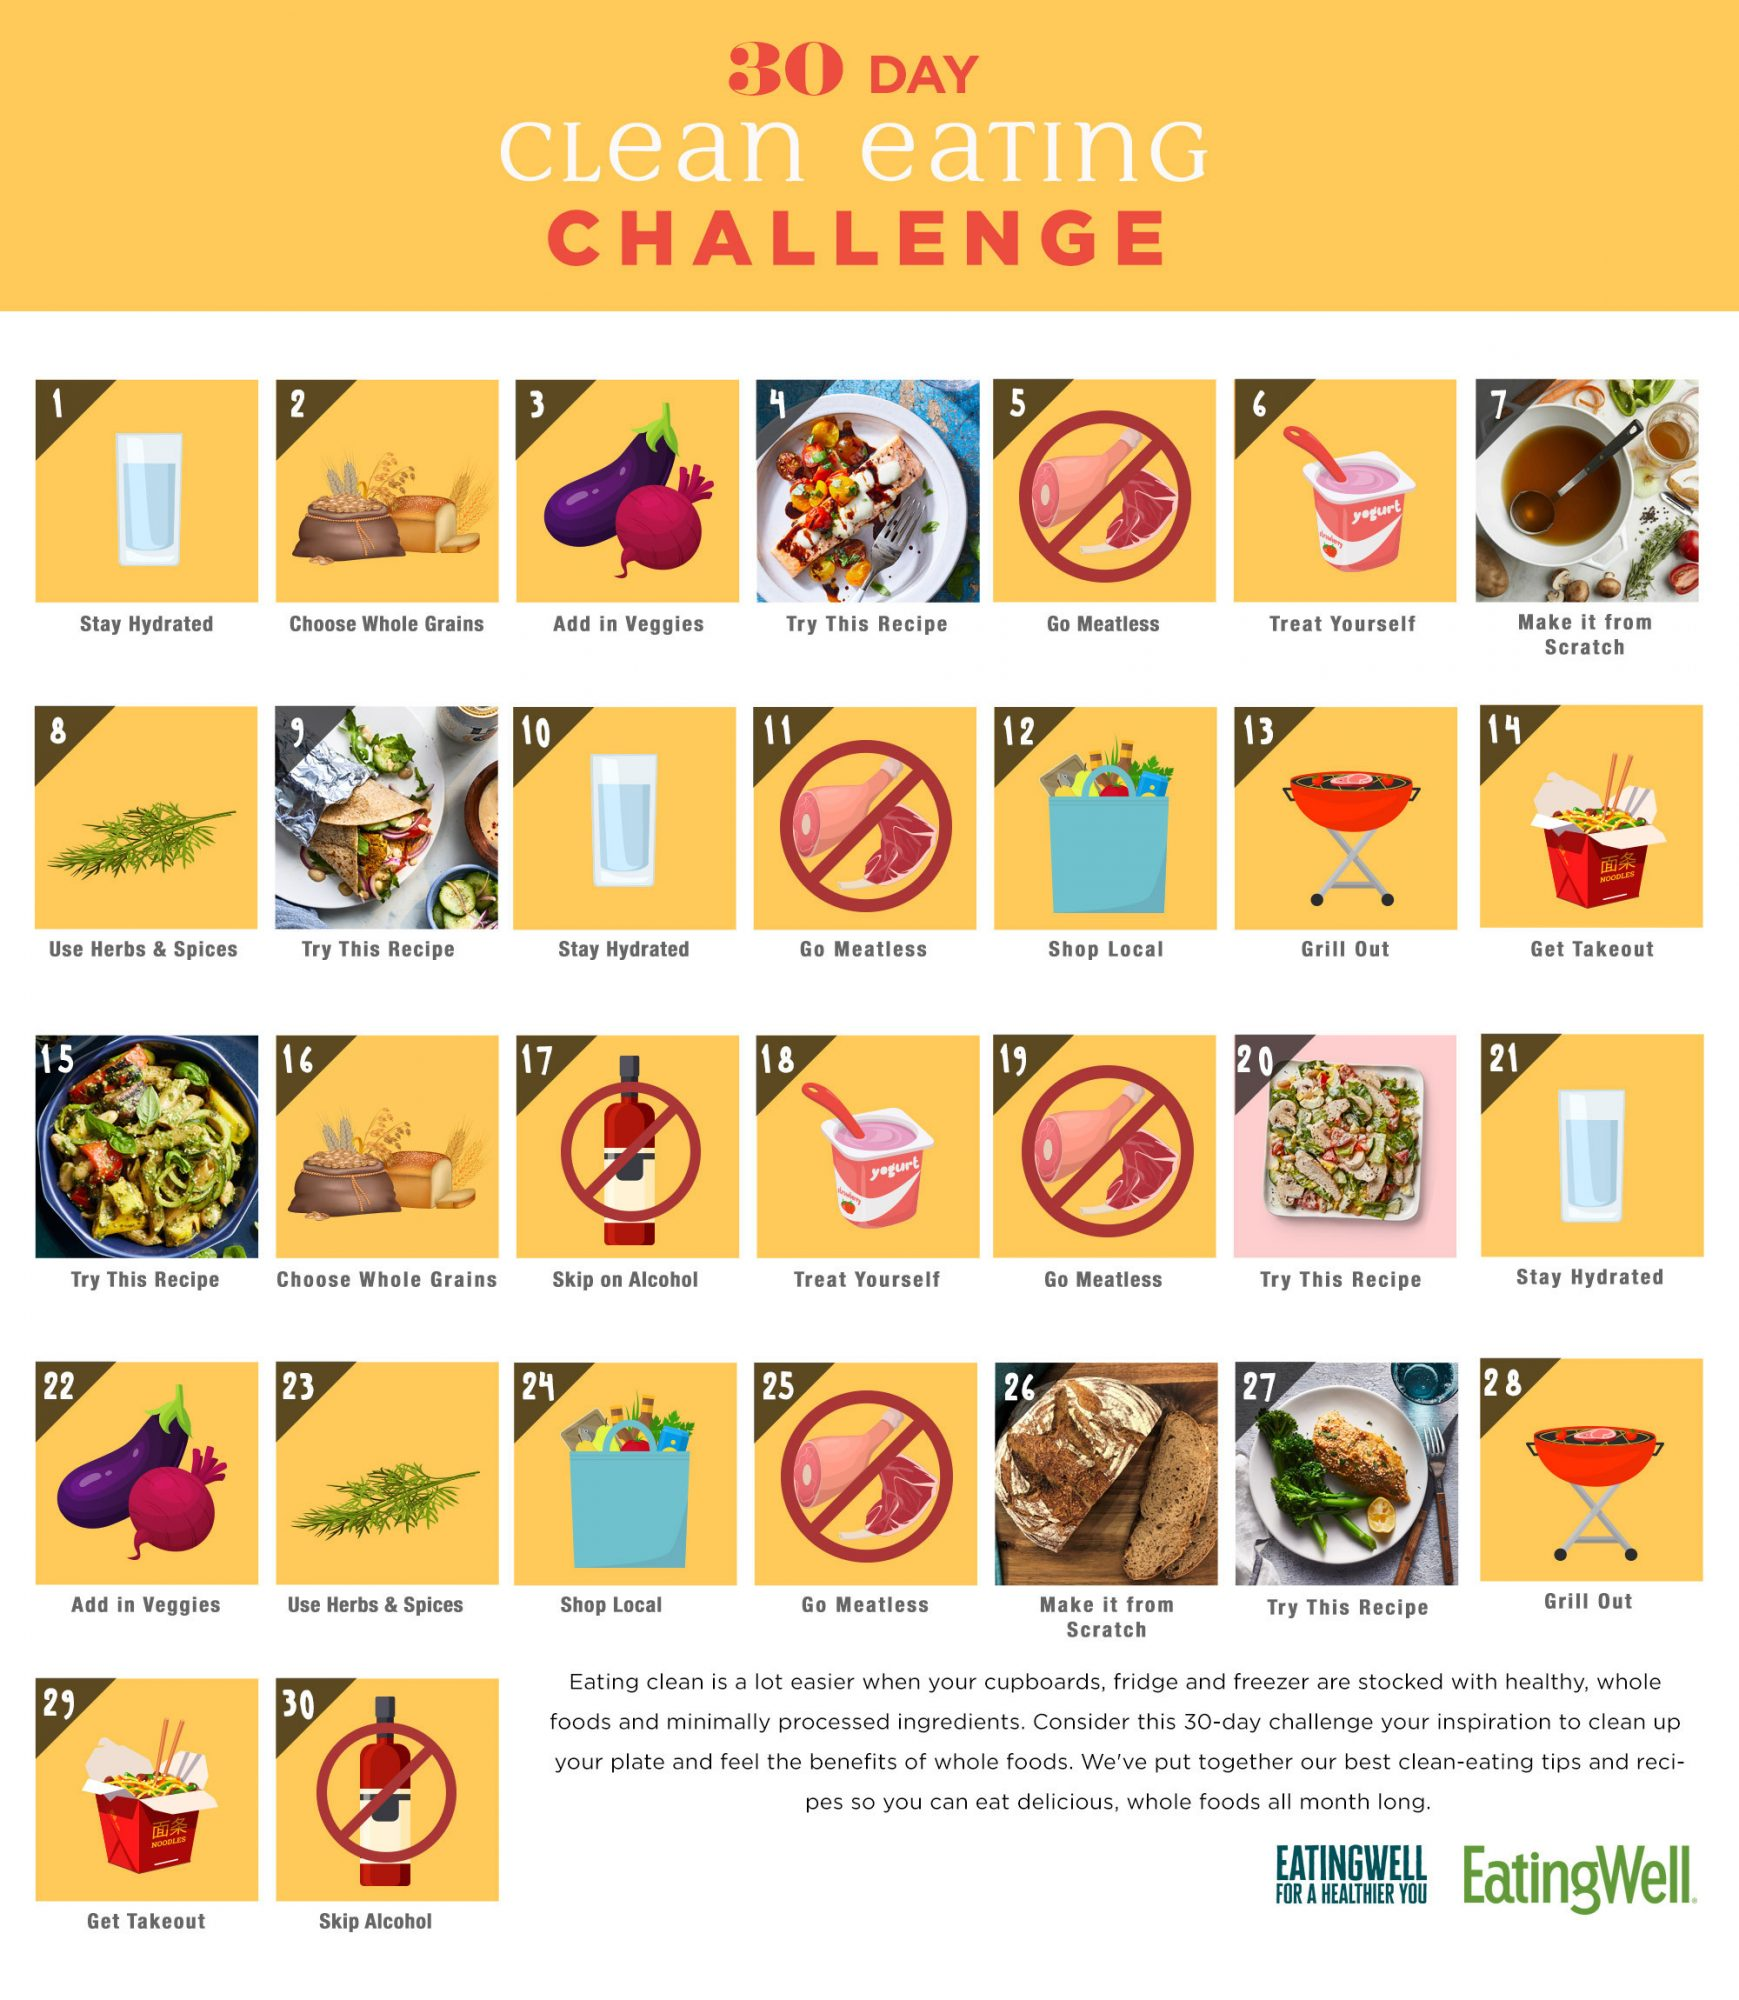 30 Day Clean Eating Challenge Calendar with tips